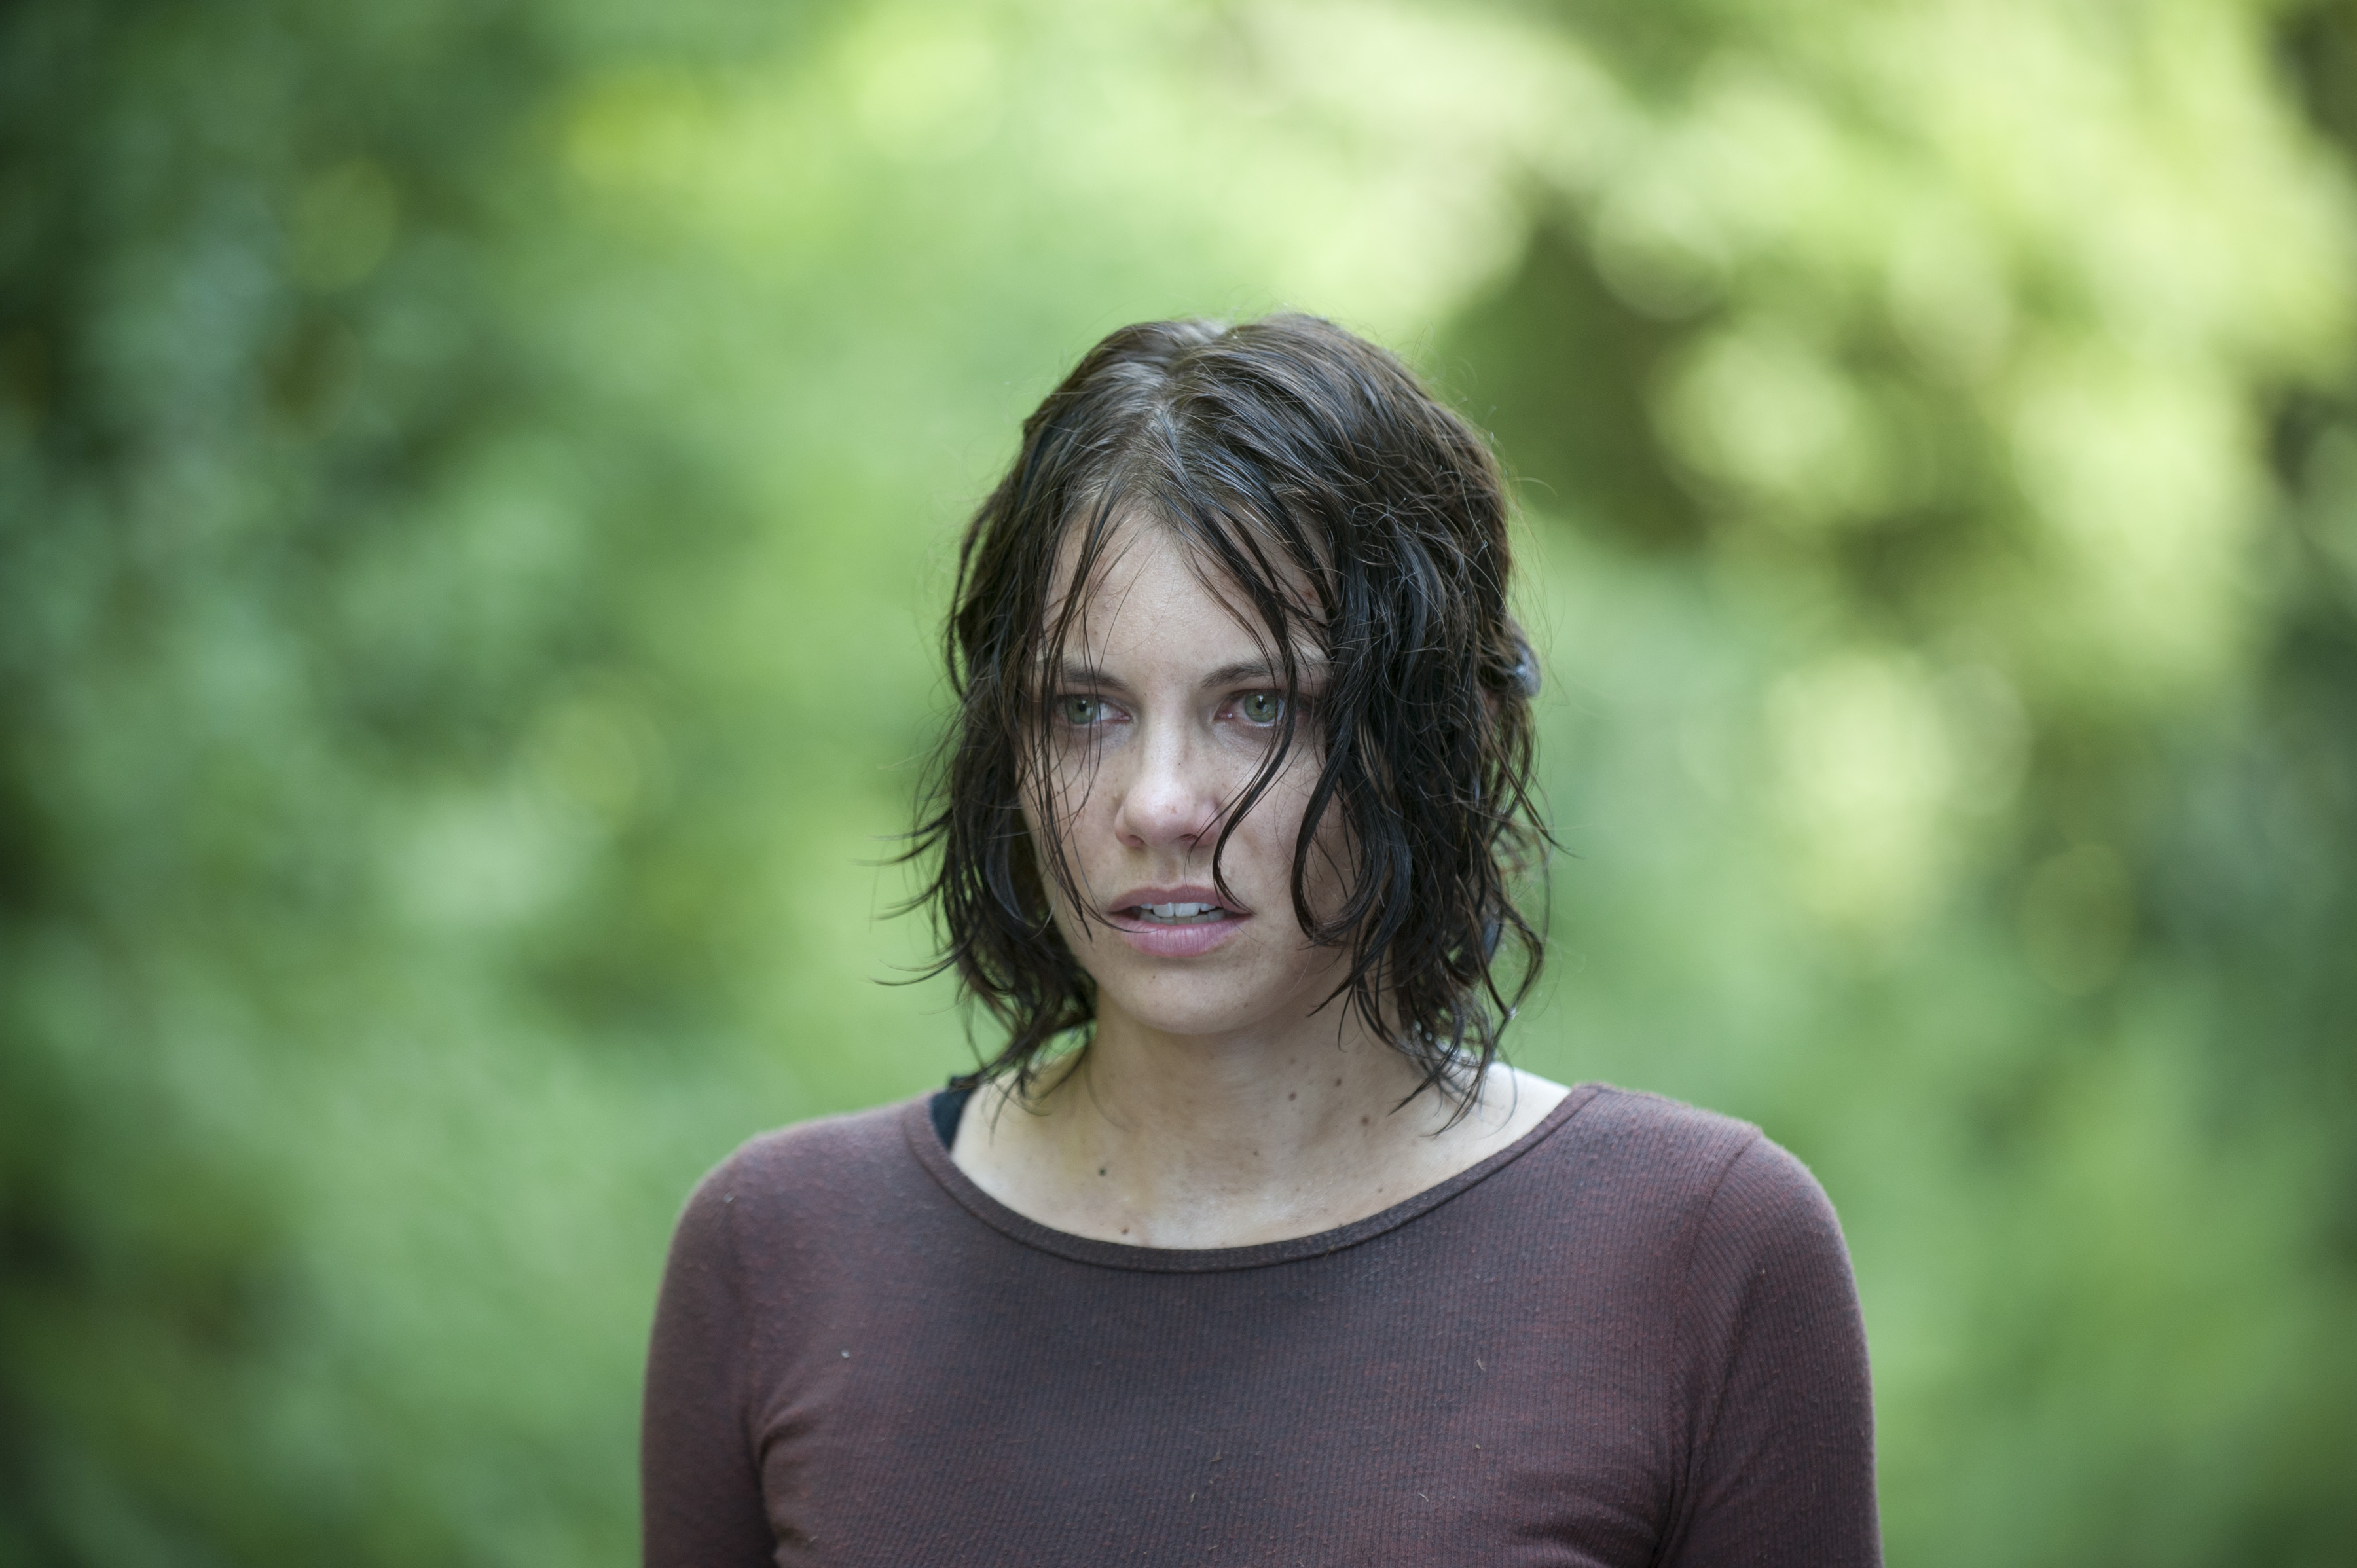 walking dead season 4 episode 10 inmates maggie - So When Is Maggie Giving Birth Anyway?